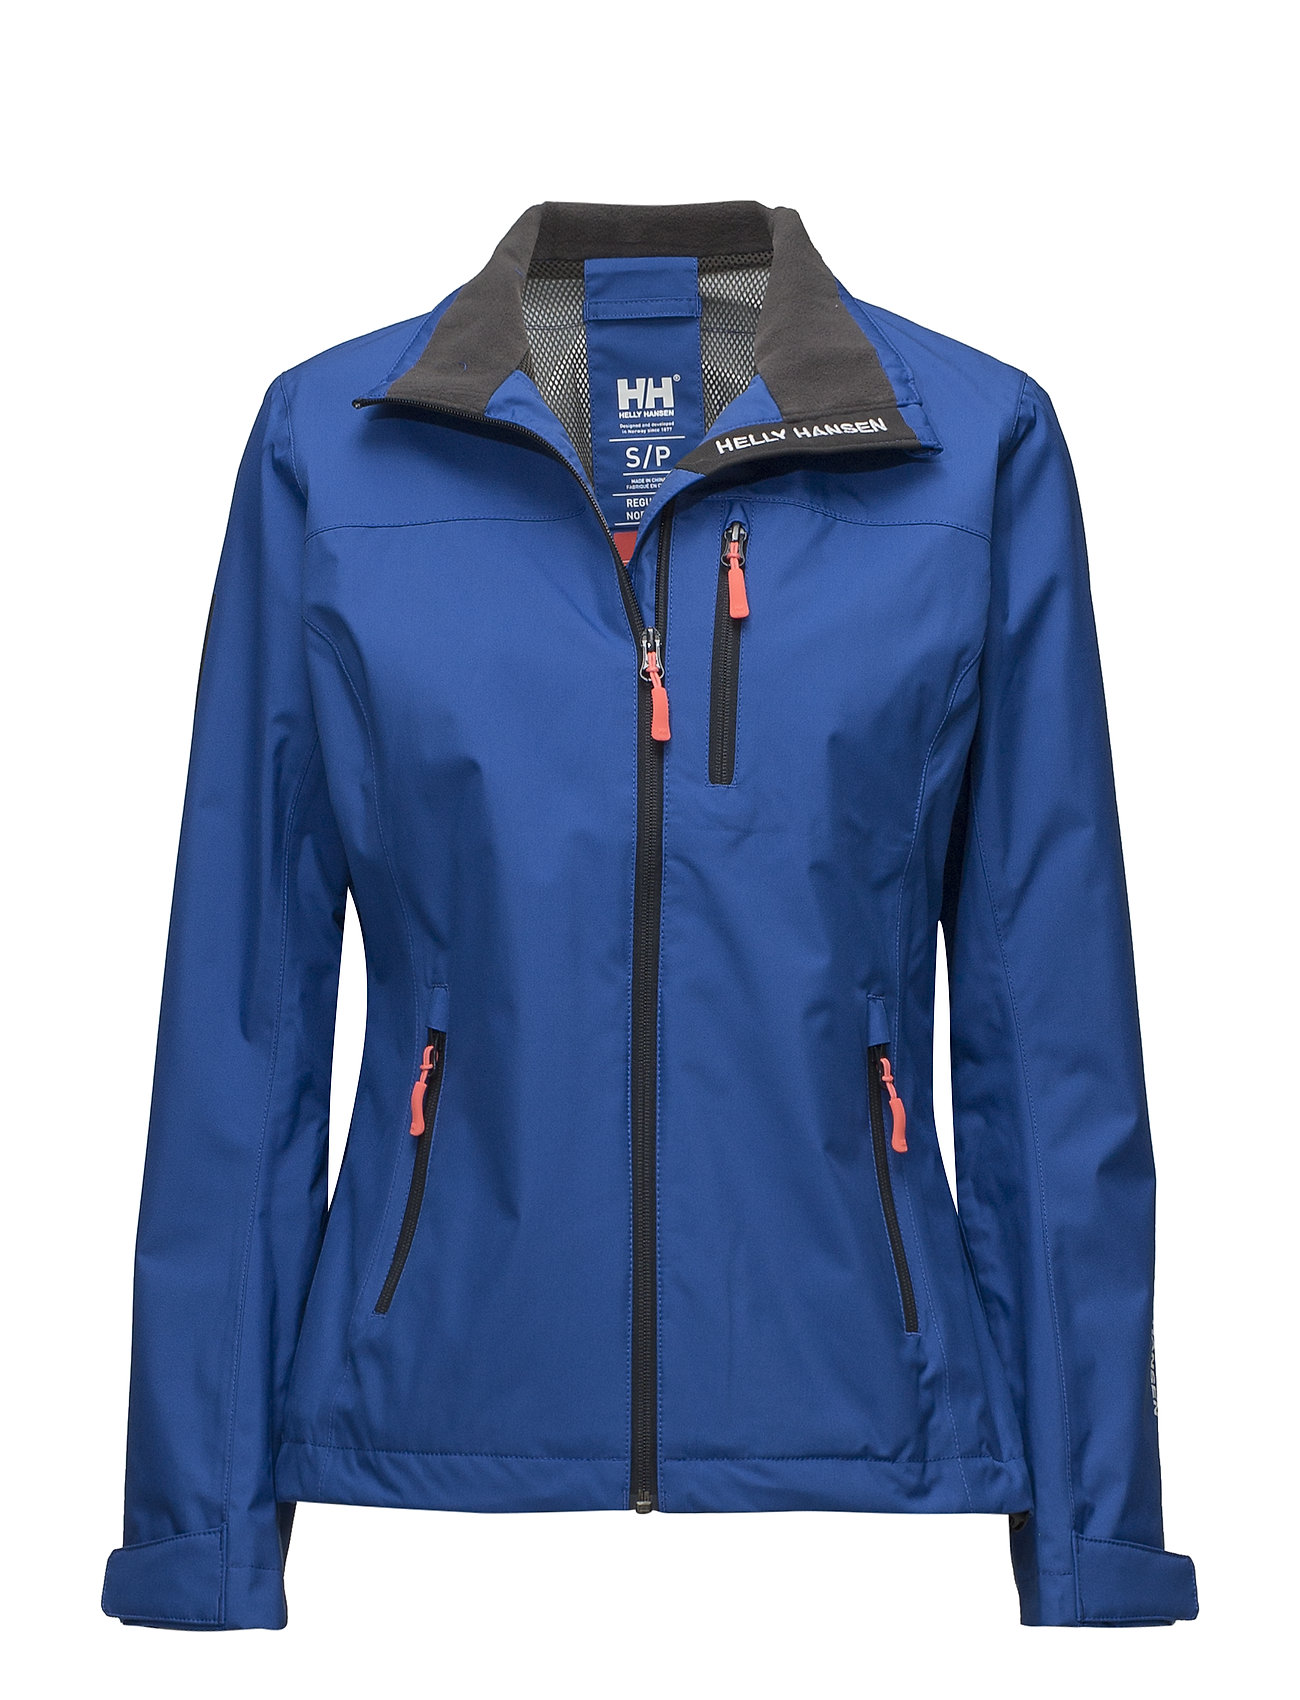 Helly Hansen W CREW JACKET - 563 OLYMPIAN BLUE